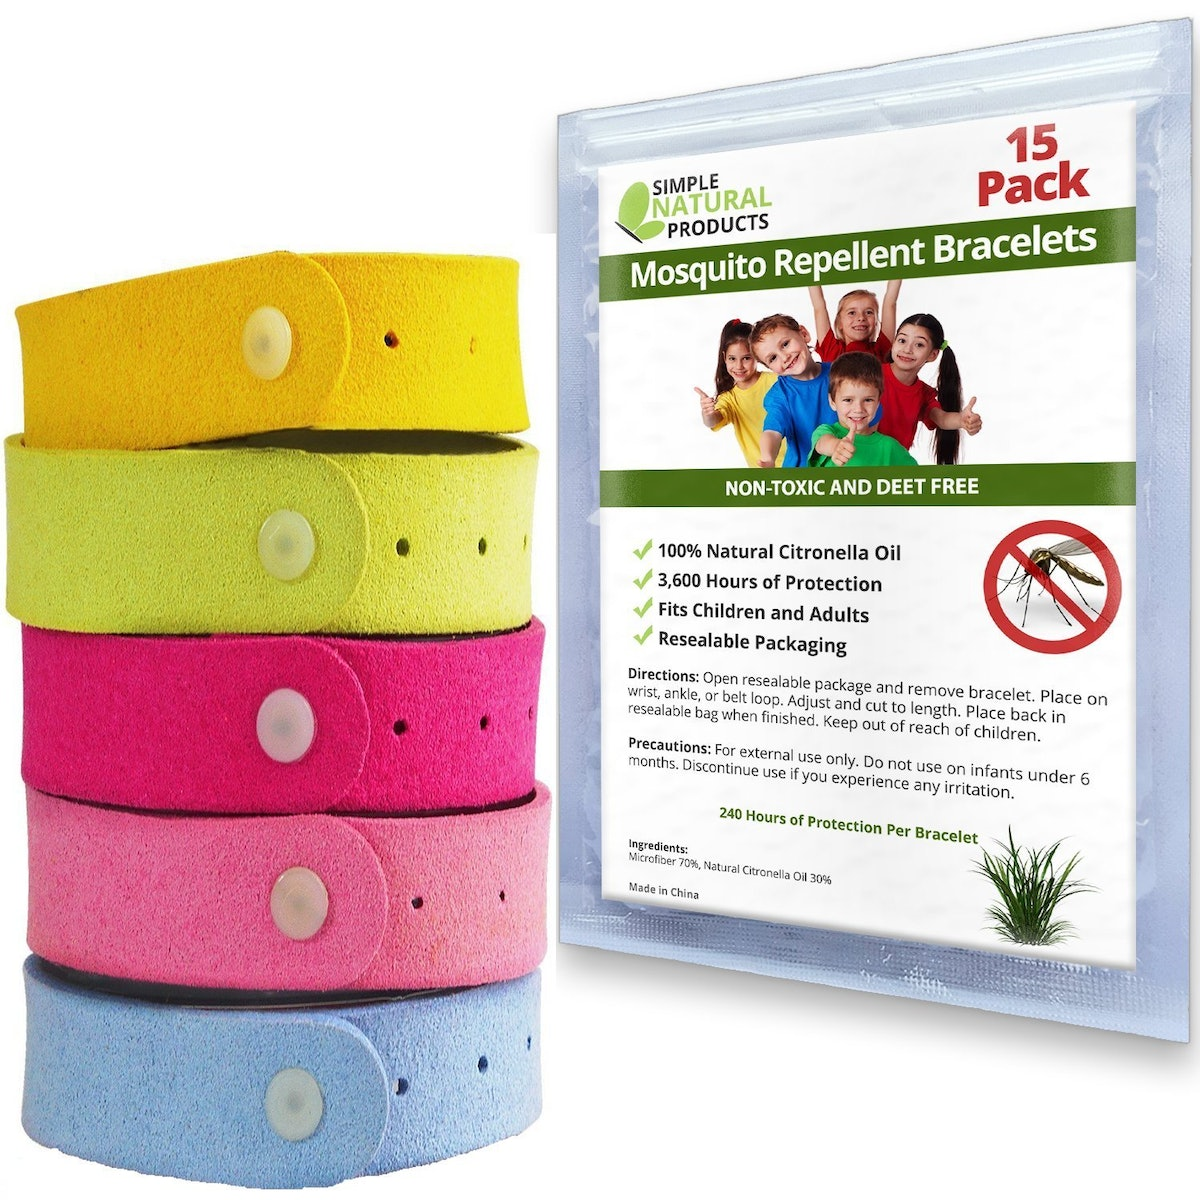 Simple Natural Products Mosquito Repellent Bracelets (15 Pack)